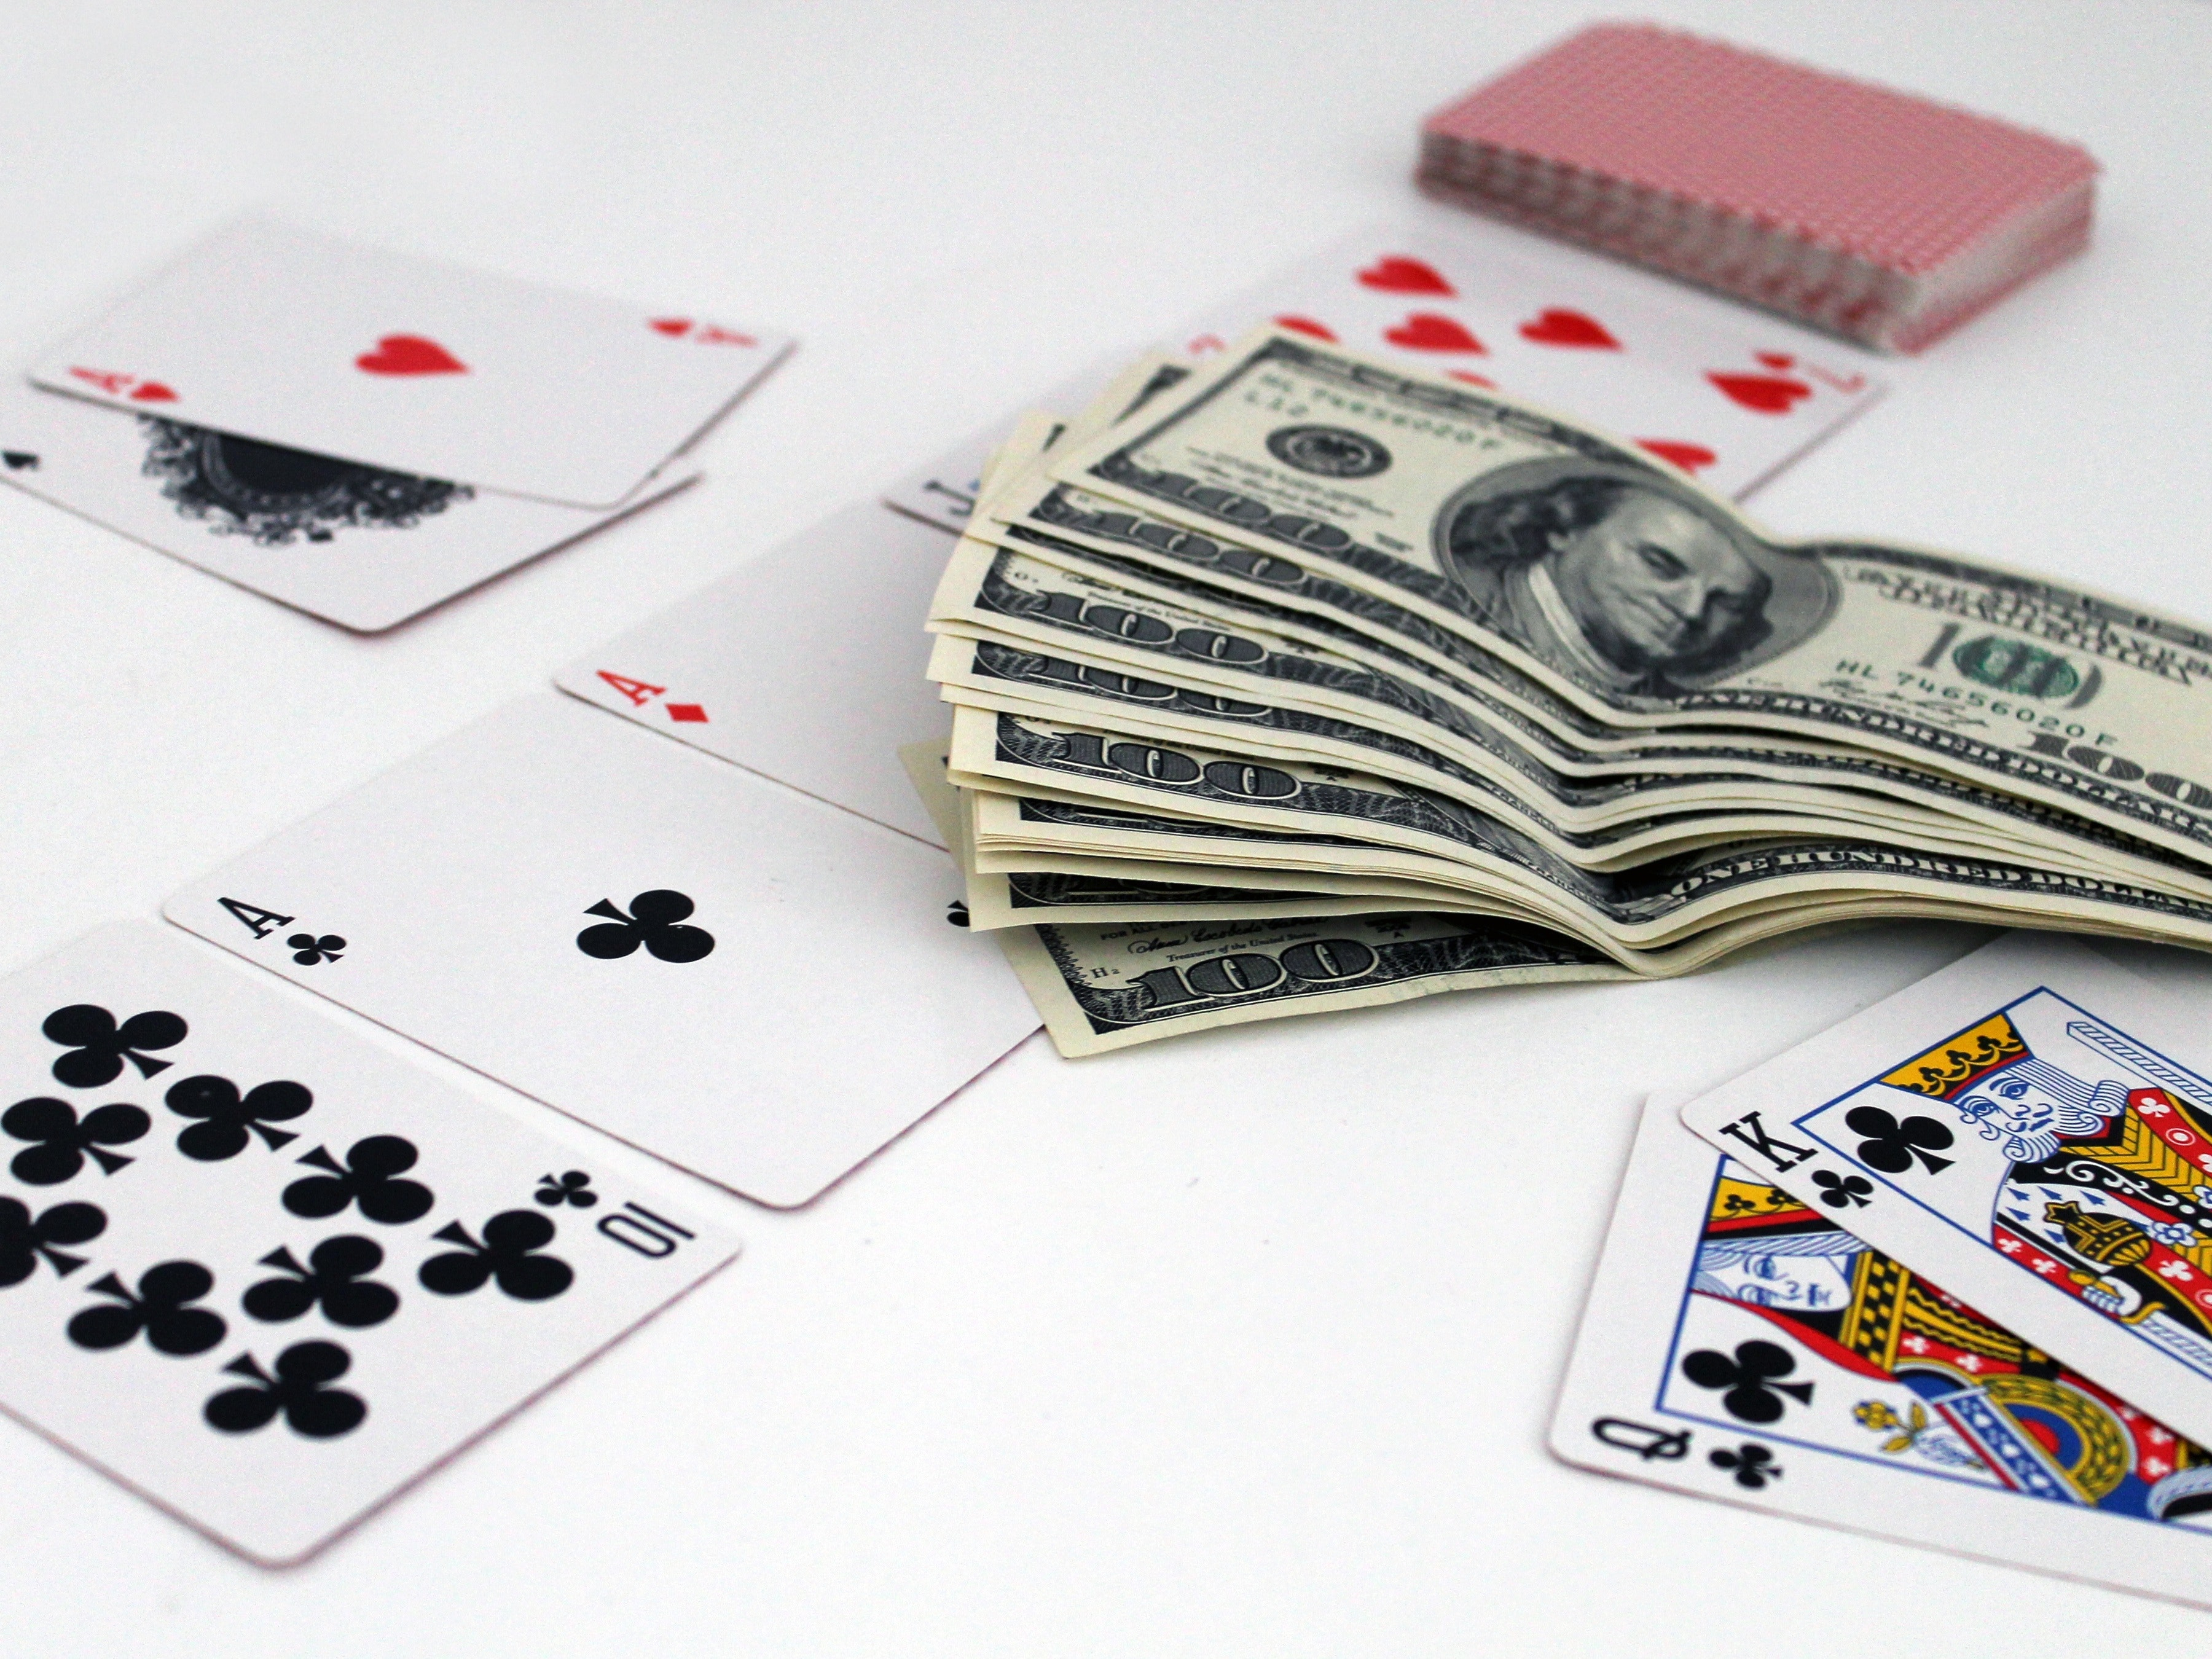 5 Biggest Blackjack Wins Of All Time (Reported)